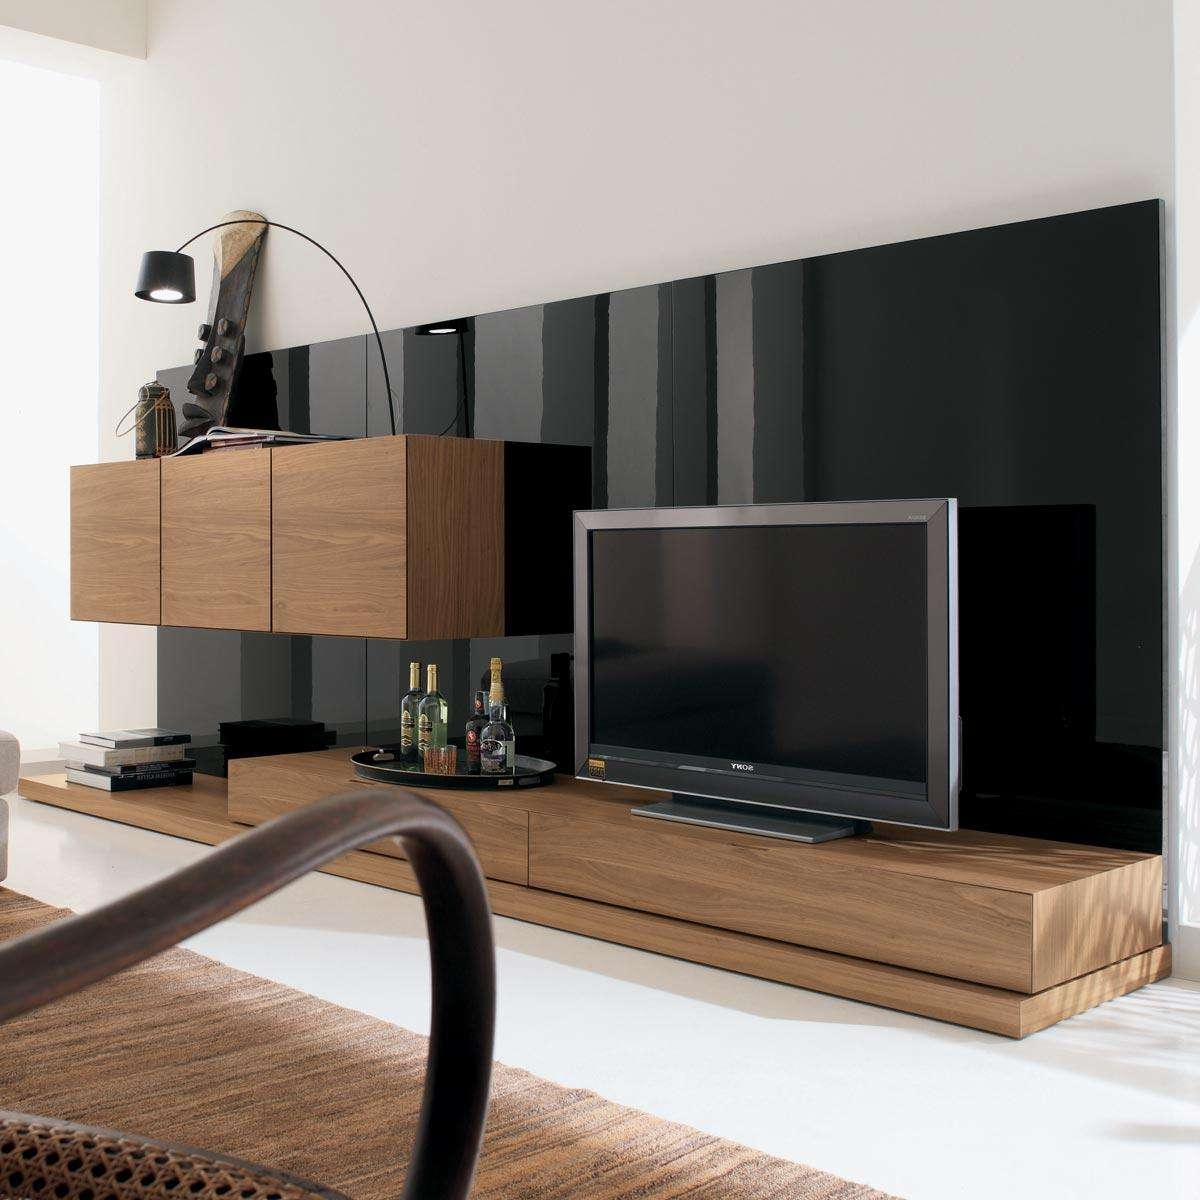 Modern Nature Wood Big Screen Tv Stand Wall Mounted Living Room Inside Modern Style Tv Stands (View 14 of 15)